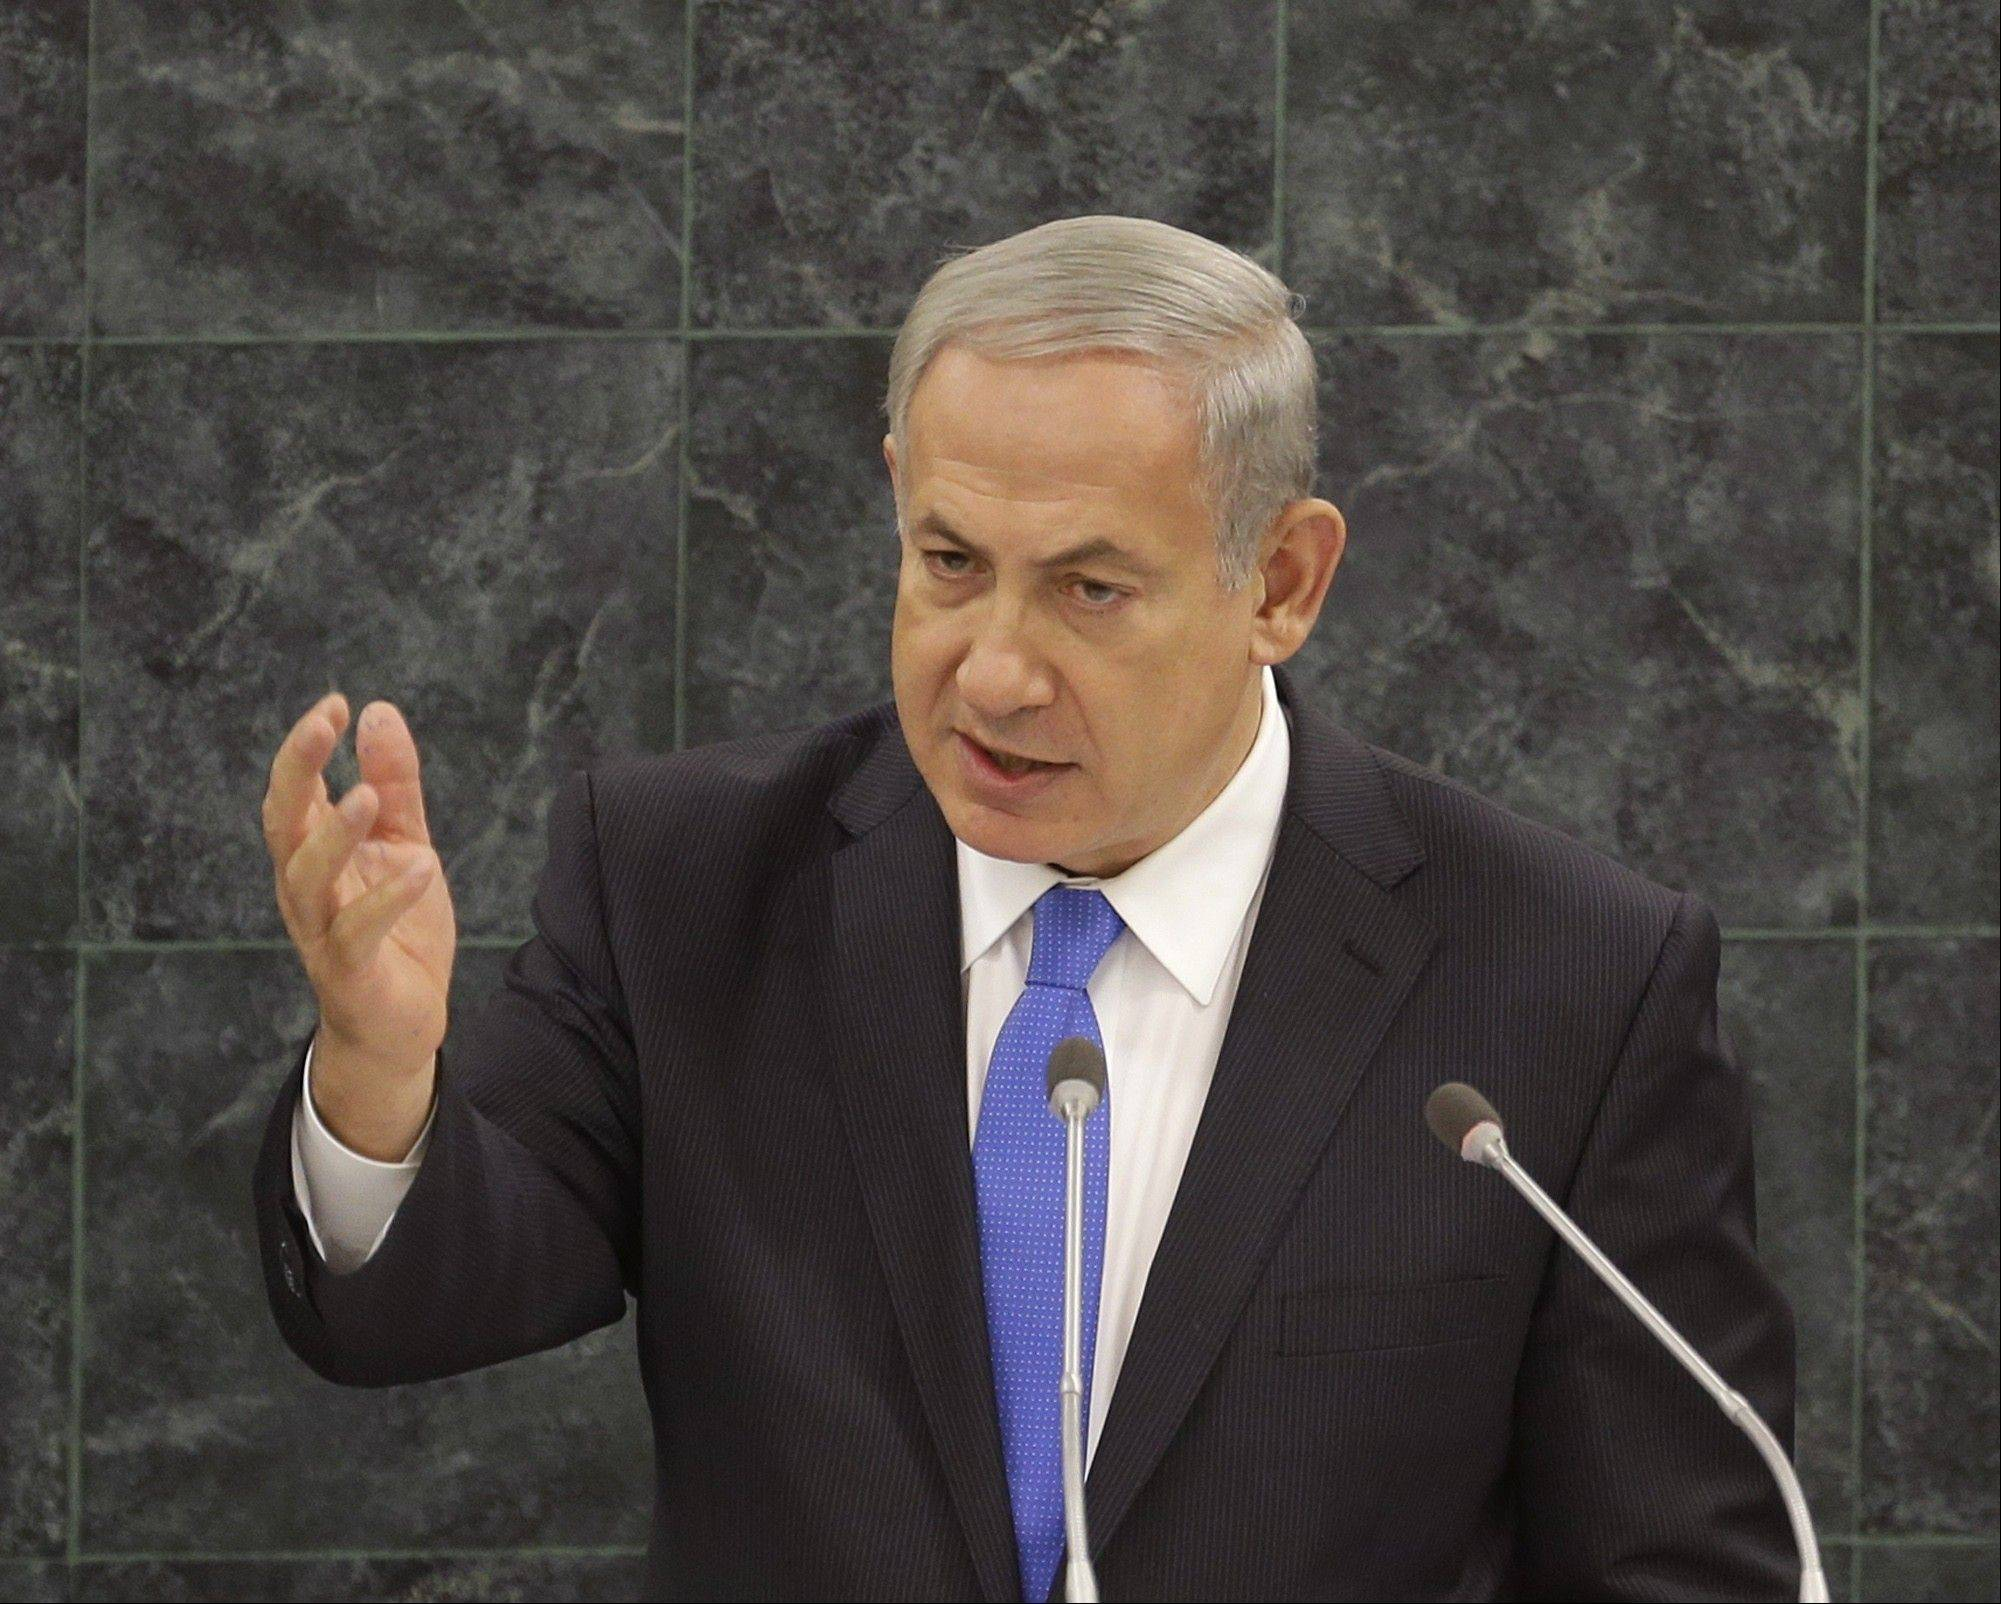 "Israeli Prime Minister Benjamin Netanyahu, speaking before the U.N. General Assembly on Tuesday, declared his country will never allow Iran to get nuclear weapons, even if it has to act alone. He dismissed the Iranian president's ""charm offensive"" as a ruse to get relief from sanctions."